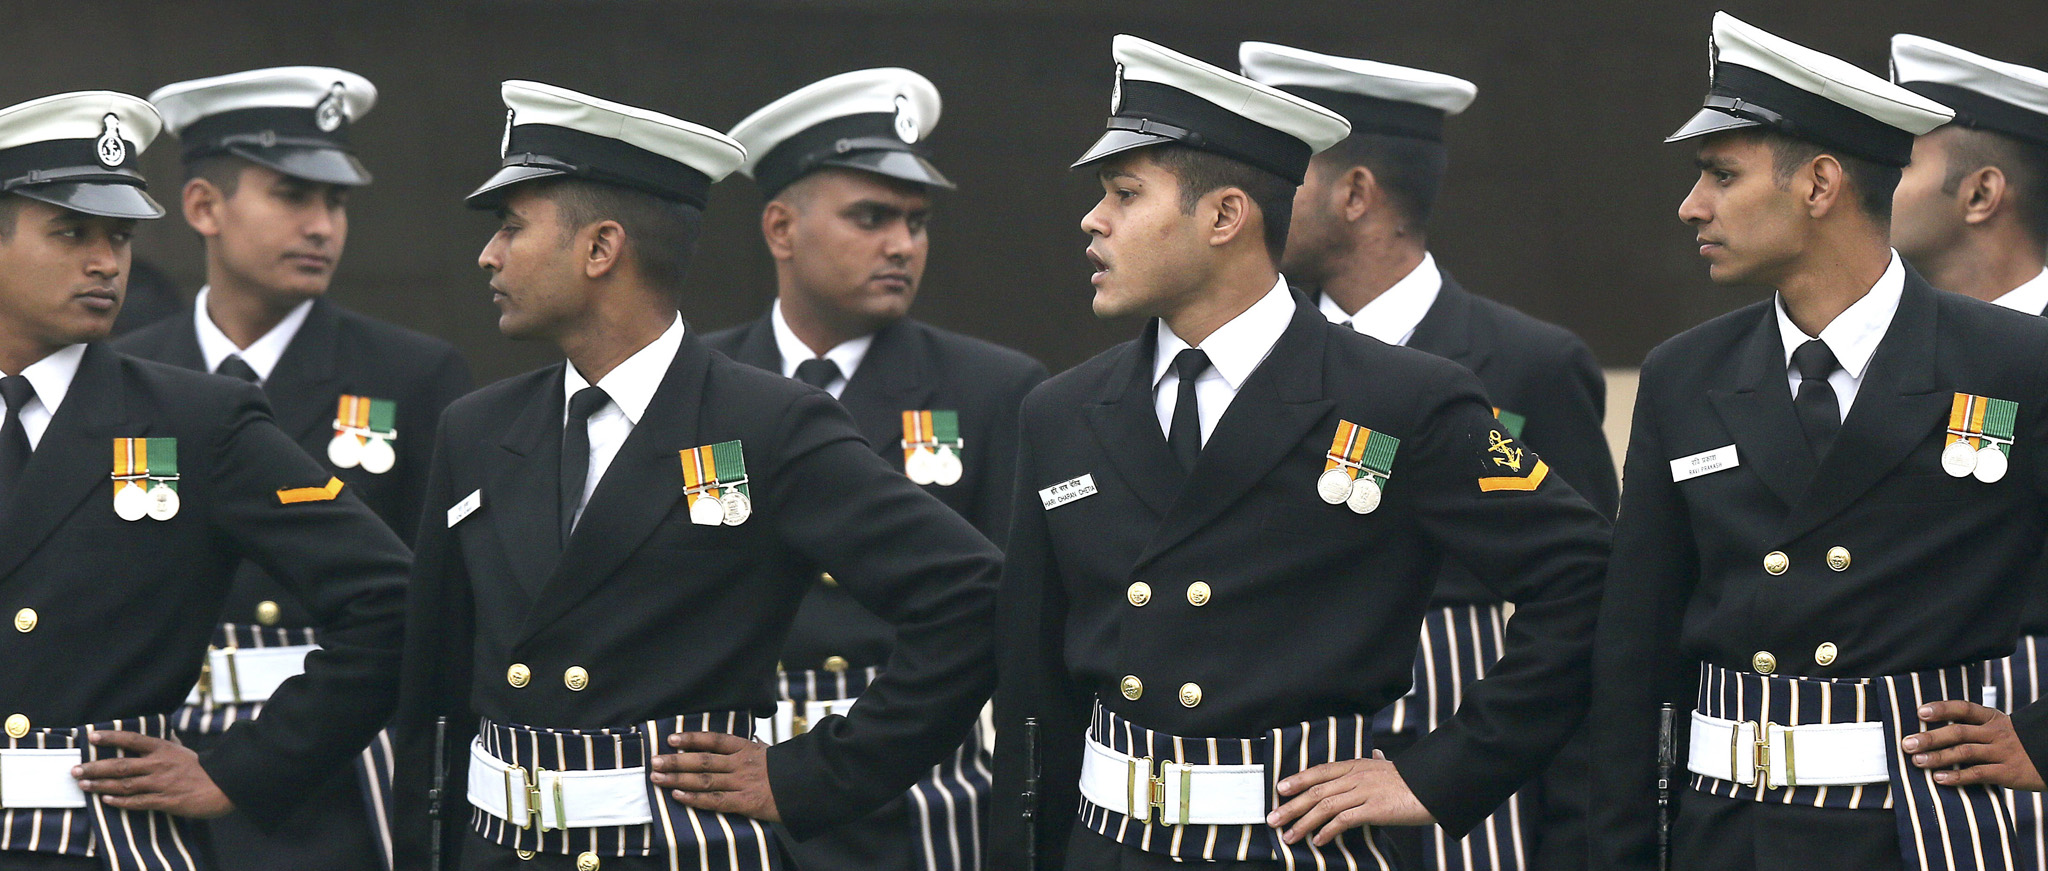 Indian navy sailors participate at a function to pay respect at Rajghat, the memorial of Mahatma Gandhi, on his death anniversary in New Delhi, India, Monday, Jan. 30, 2014. The day when Gandhi was shot and killed in 1948 by Nathuram Godse, a Hindu extremist, is marked as Martyrs' Day in the country.